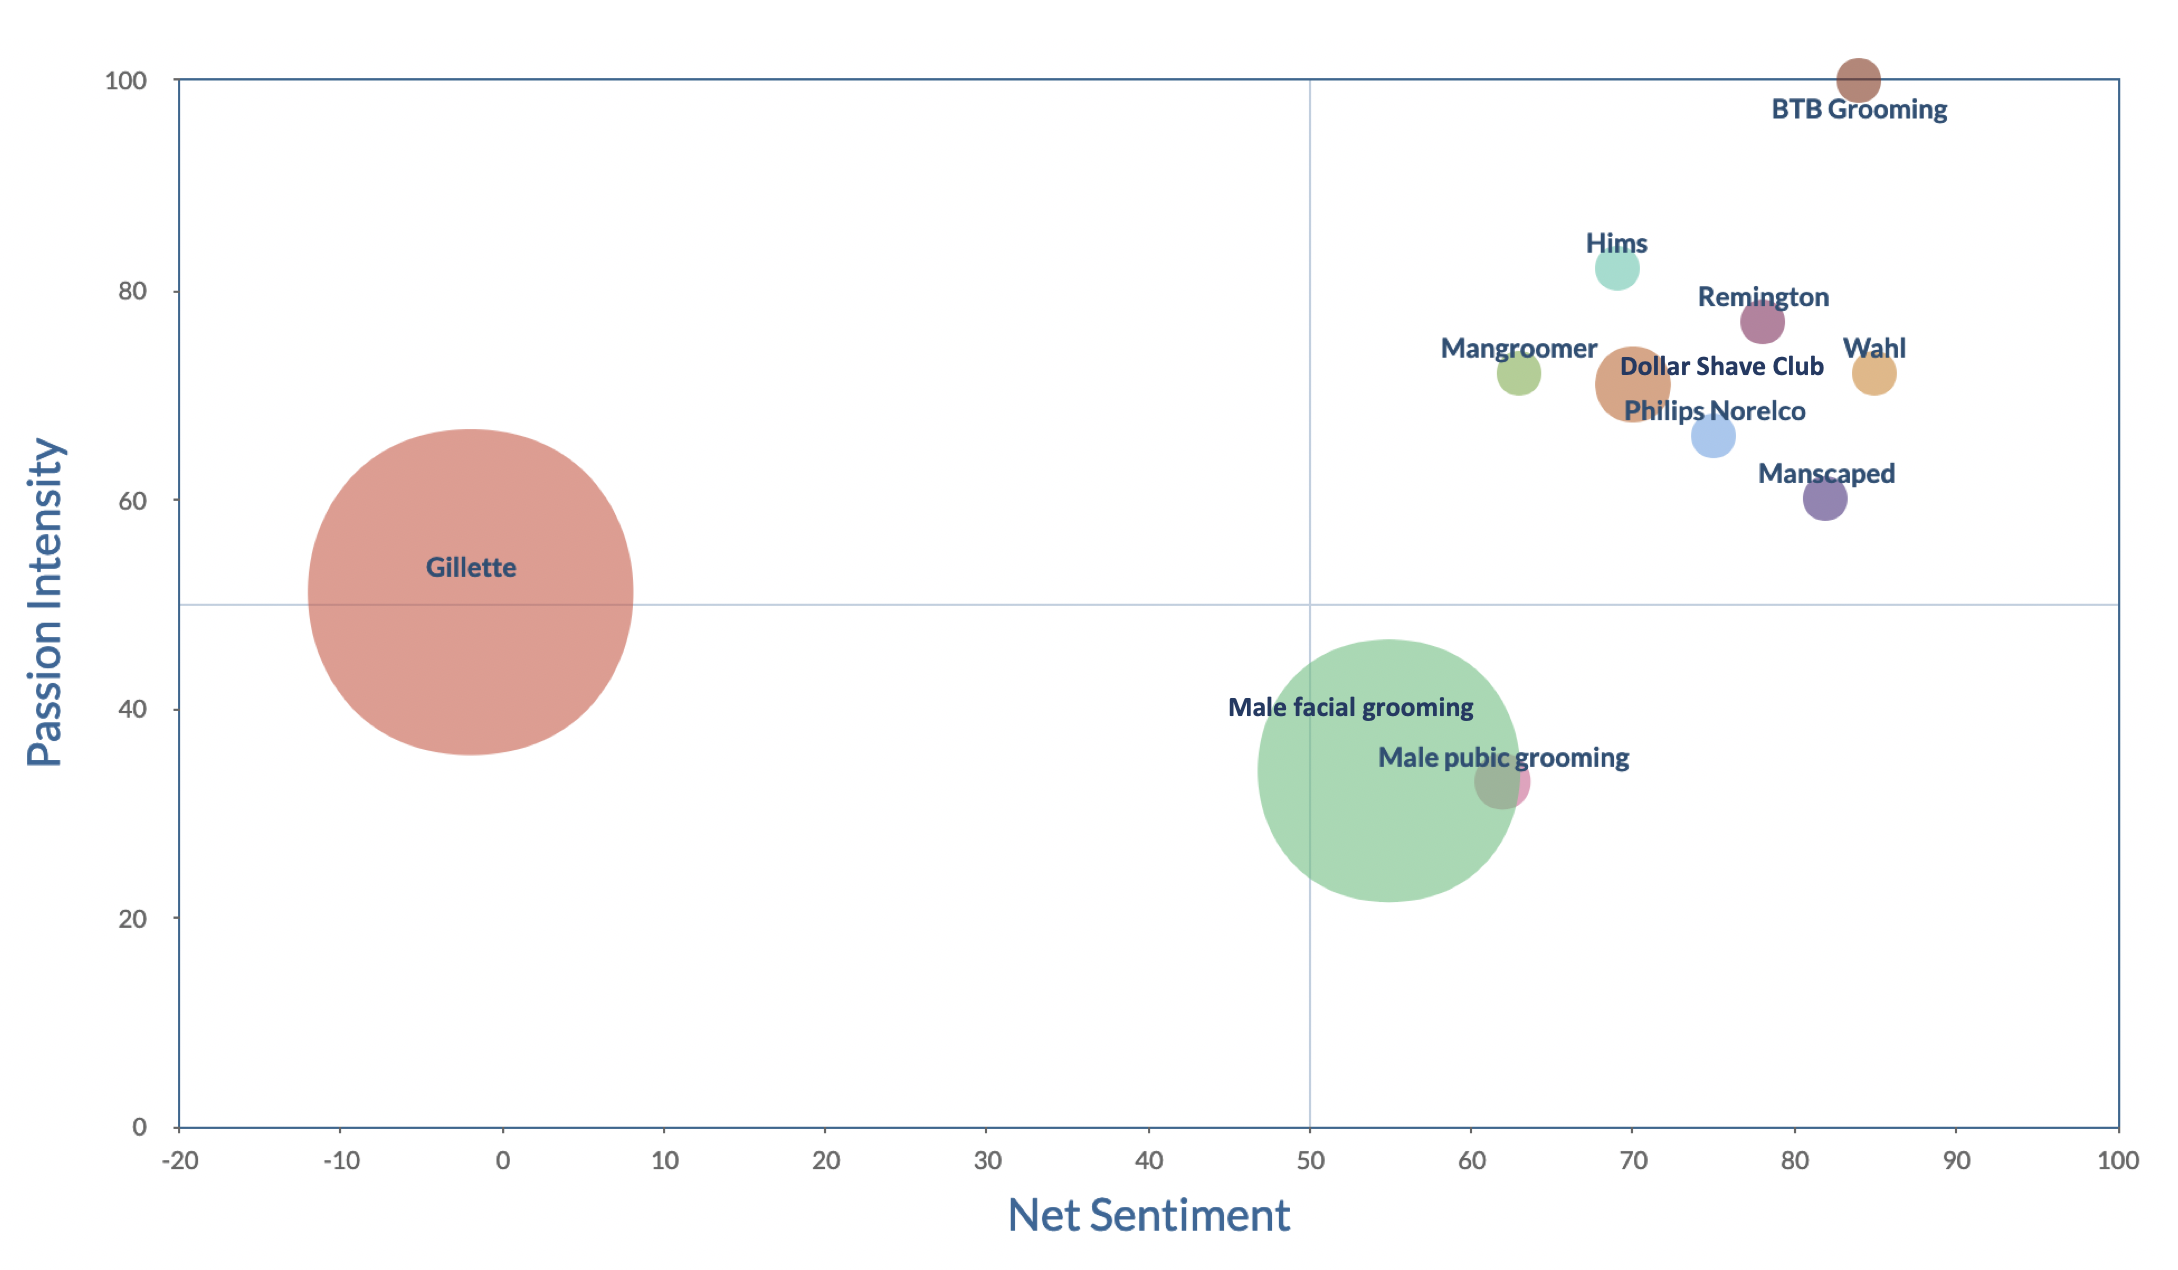 Net Sentiment and Passion score for selected male grooming brands and topics, all internet, Feb 2018-March 2019